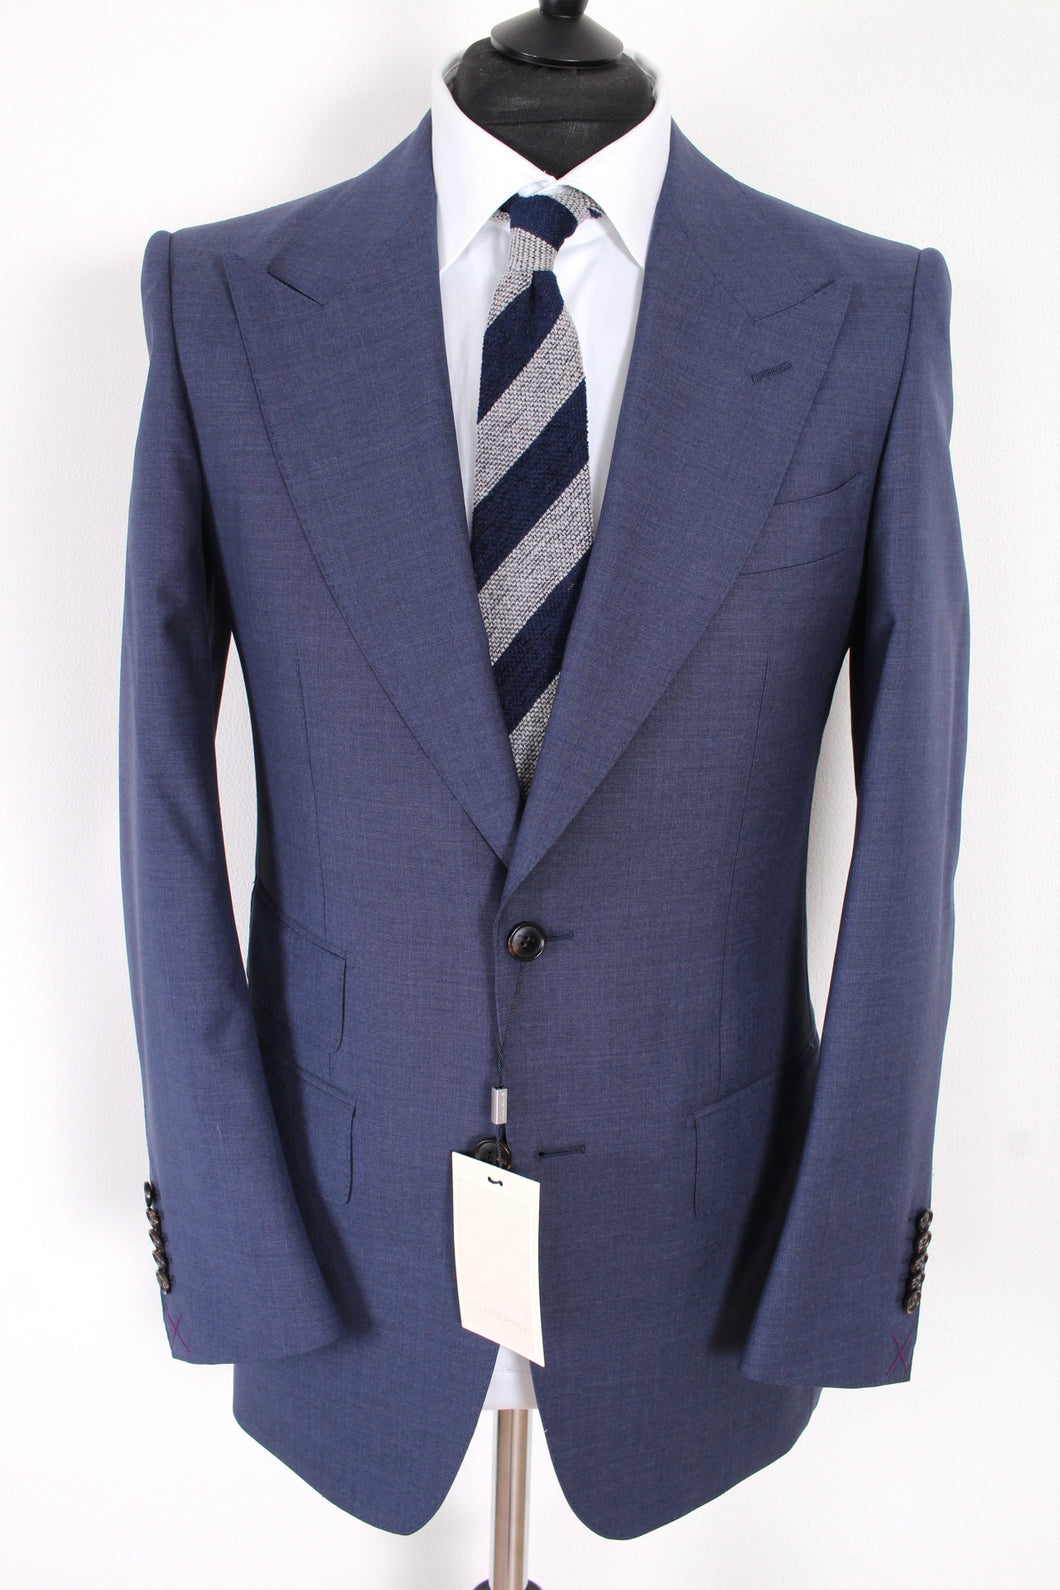 NWT Suitsupply Washington Wide Lapel Blue 100% Wool Suit - Size 36R, 38R, 40R and 42R